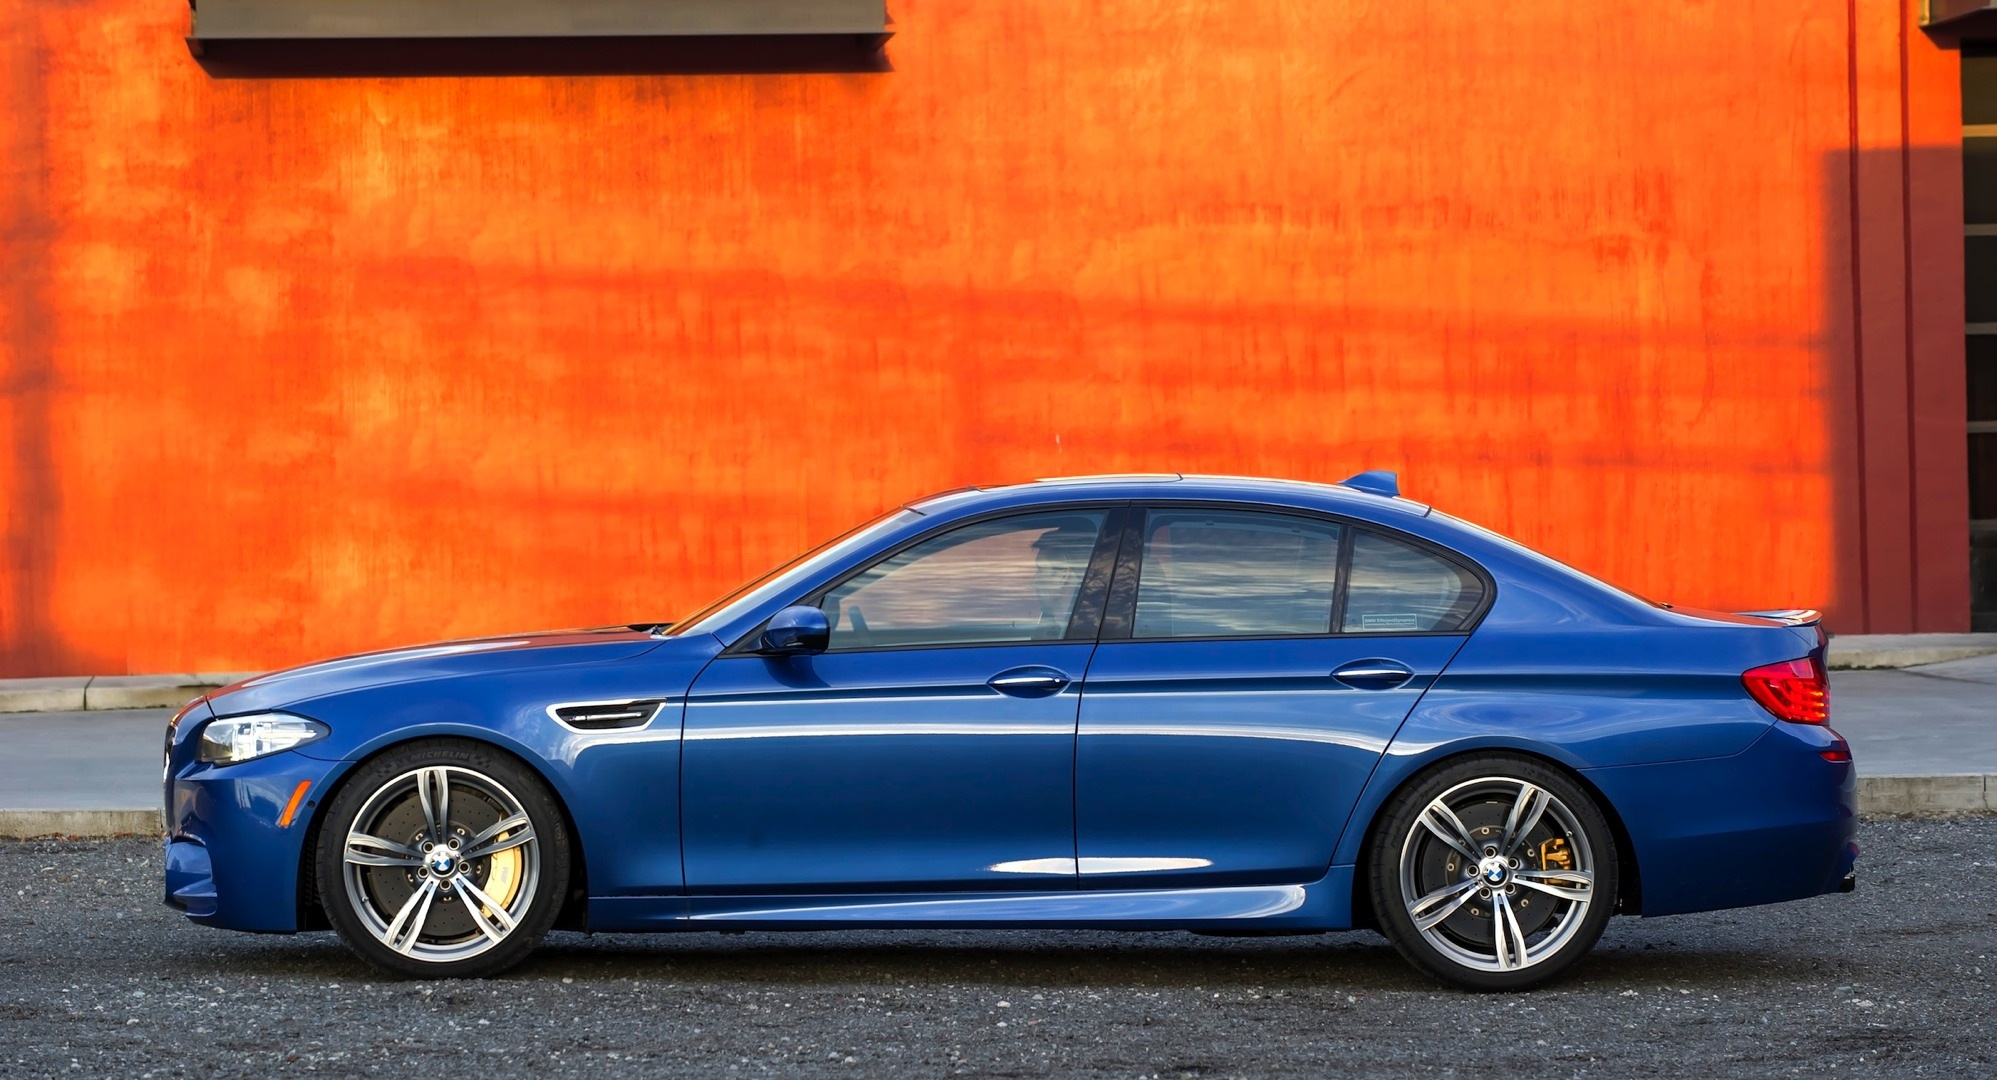 Watch And Listen To The Zcp Lci Bmw F10 M5 Go Round The Estoril Circuit Autoevolution